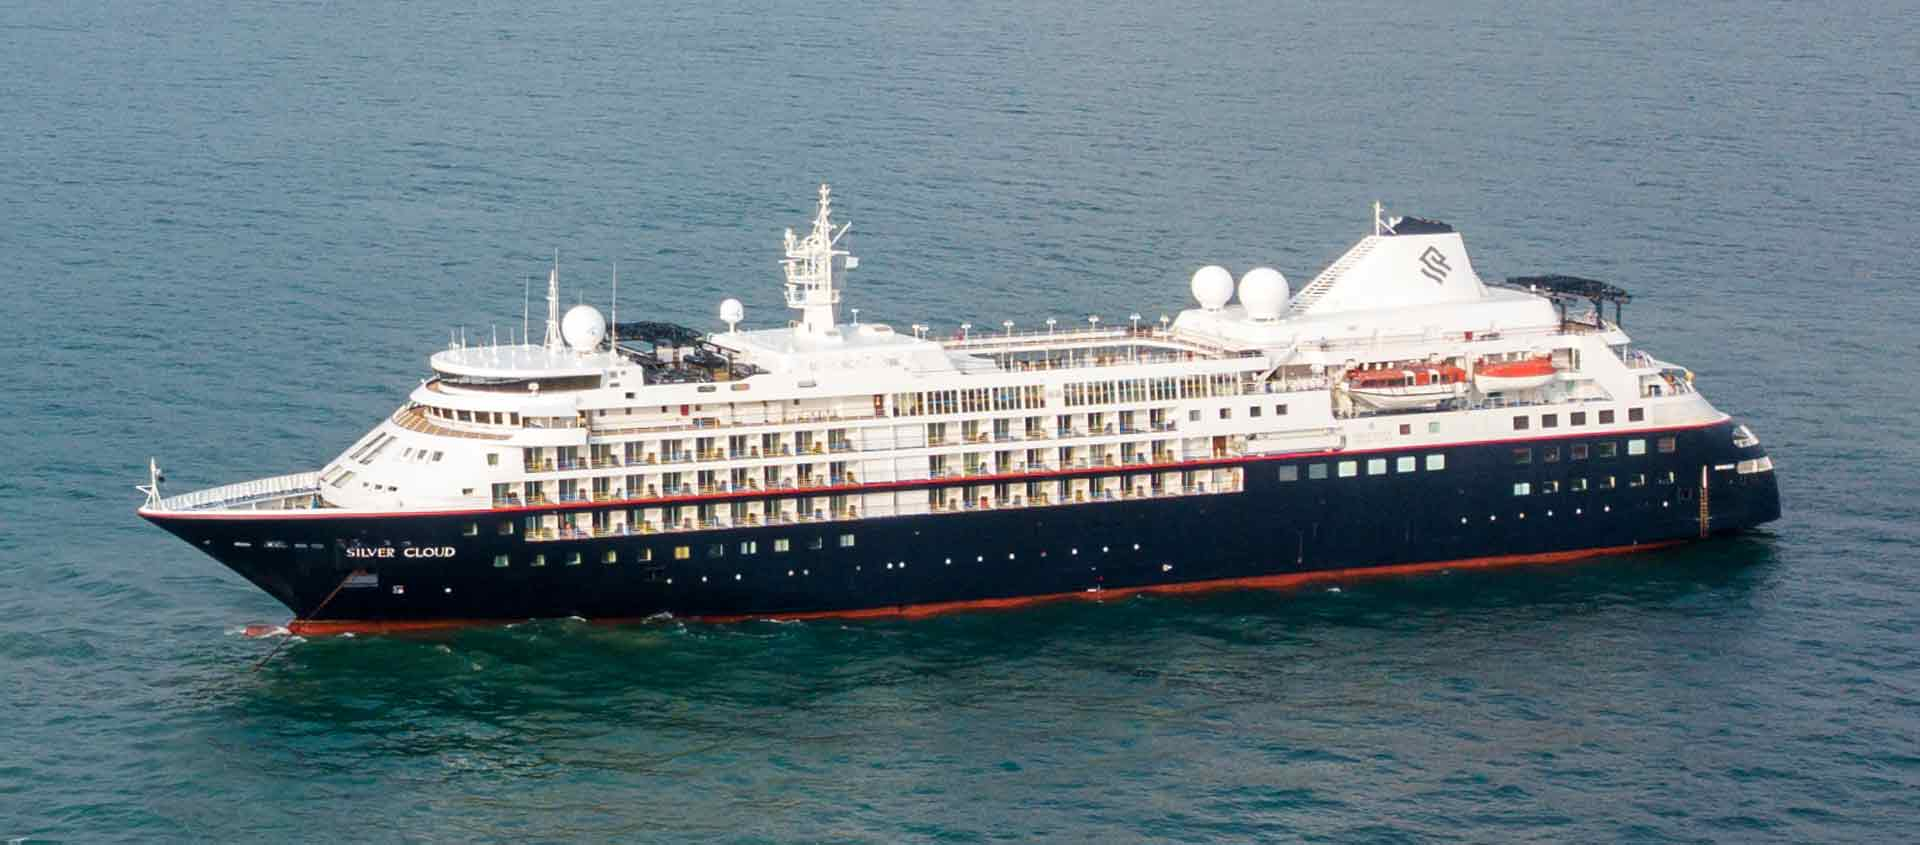 West Coast of Africa cruise photo showing vessel Silver Cloud